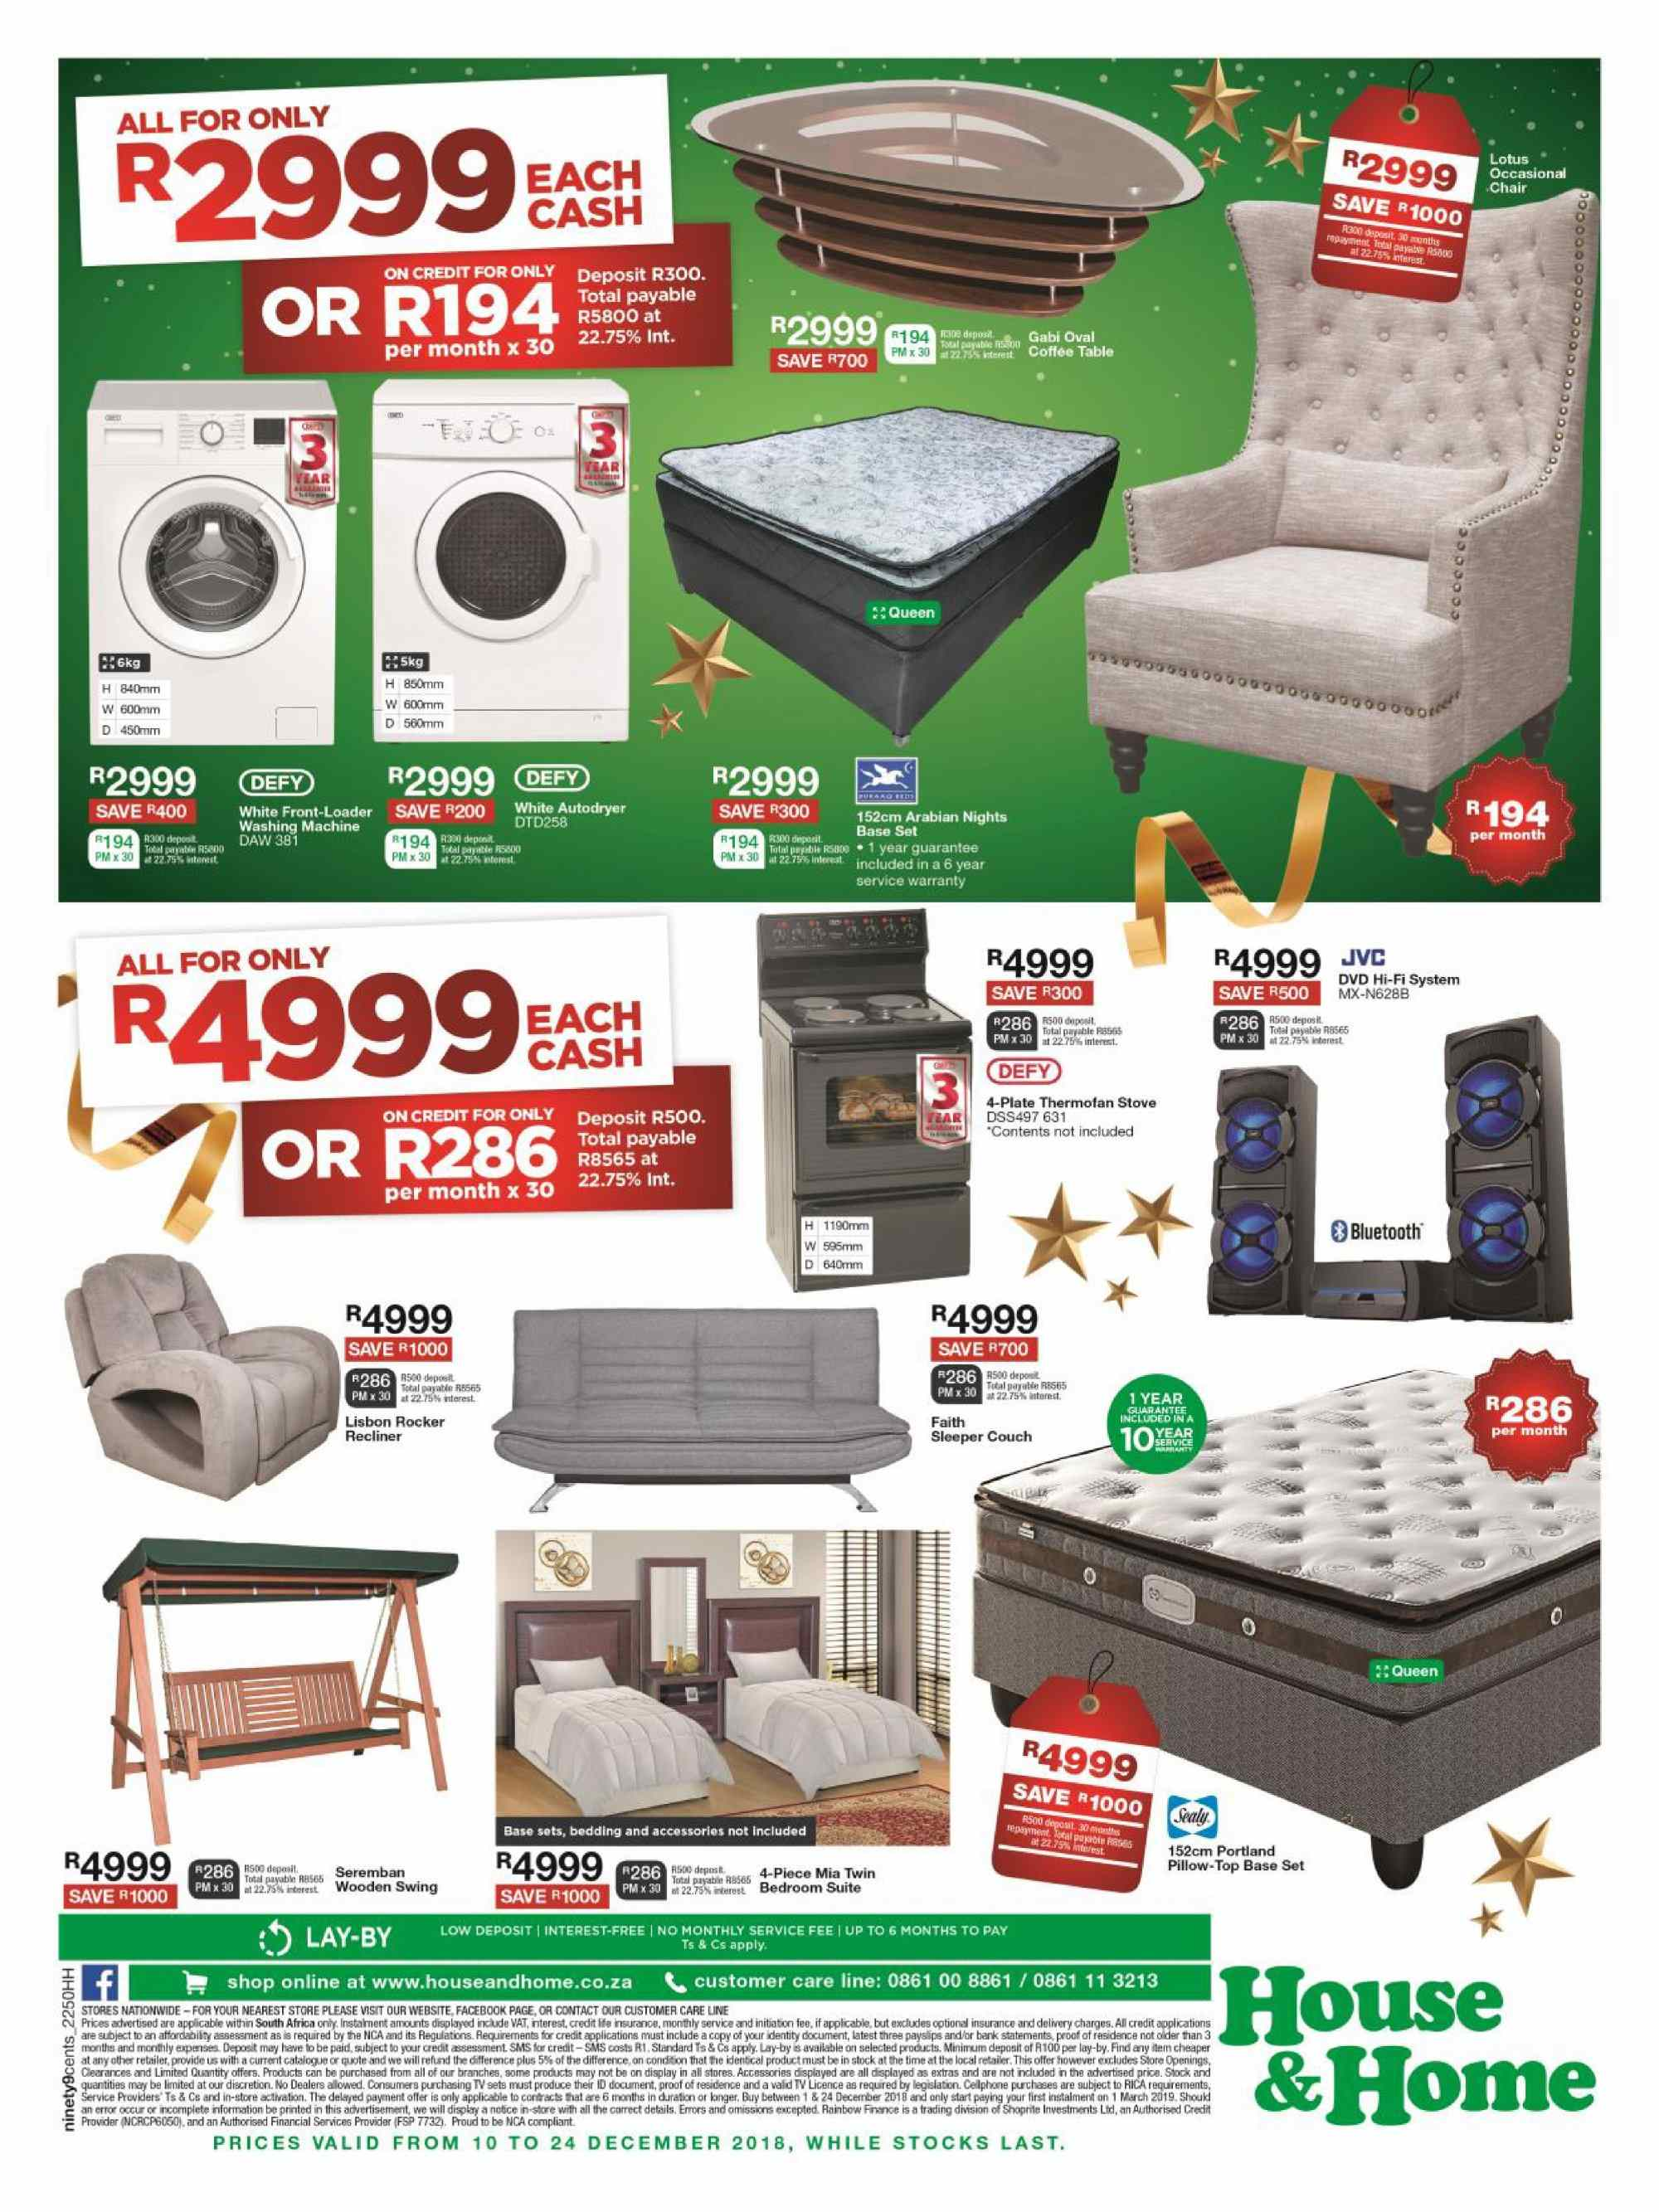 House & Home catalogue  - 12.10.2018 - 12.24.2018. Page 12.